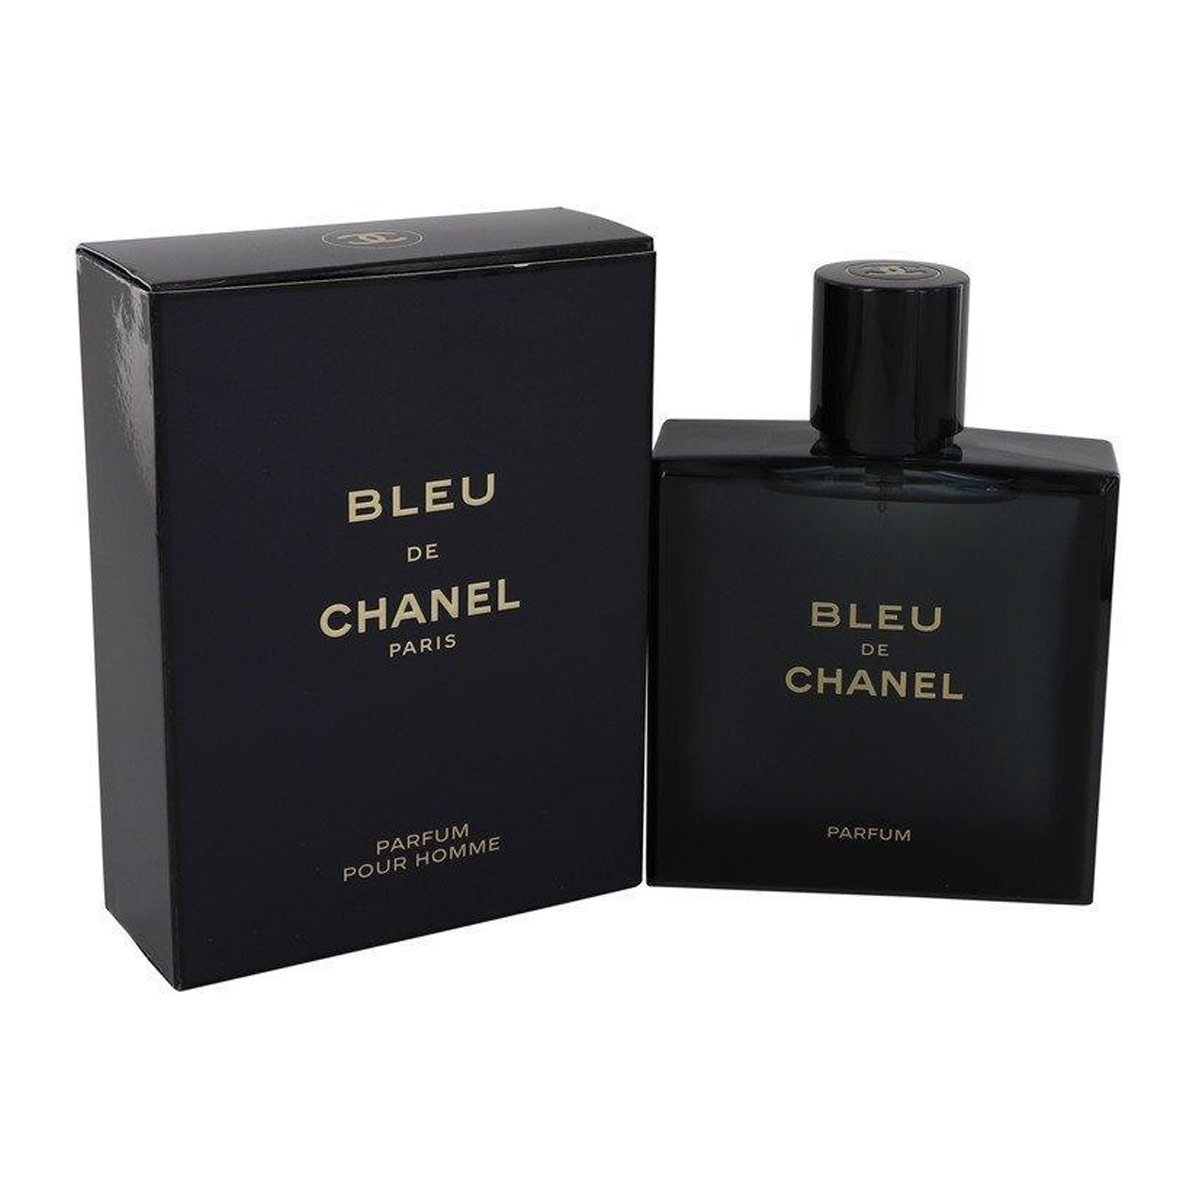 LUX New Chanel Bleu de Chanel Parfum 100 ml